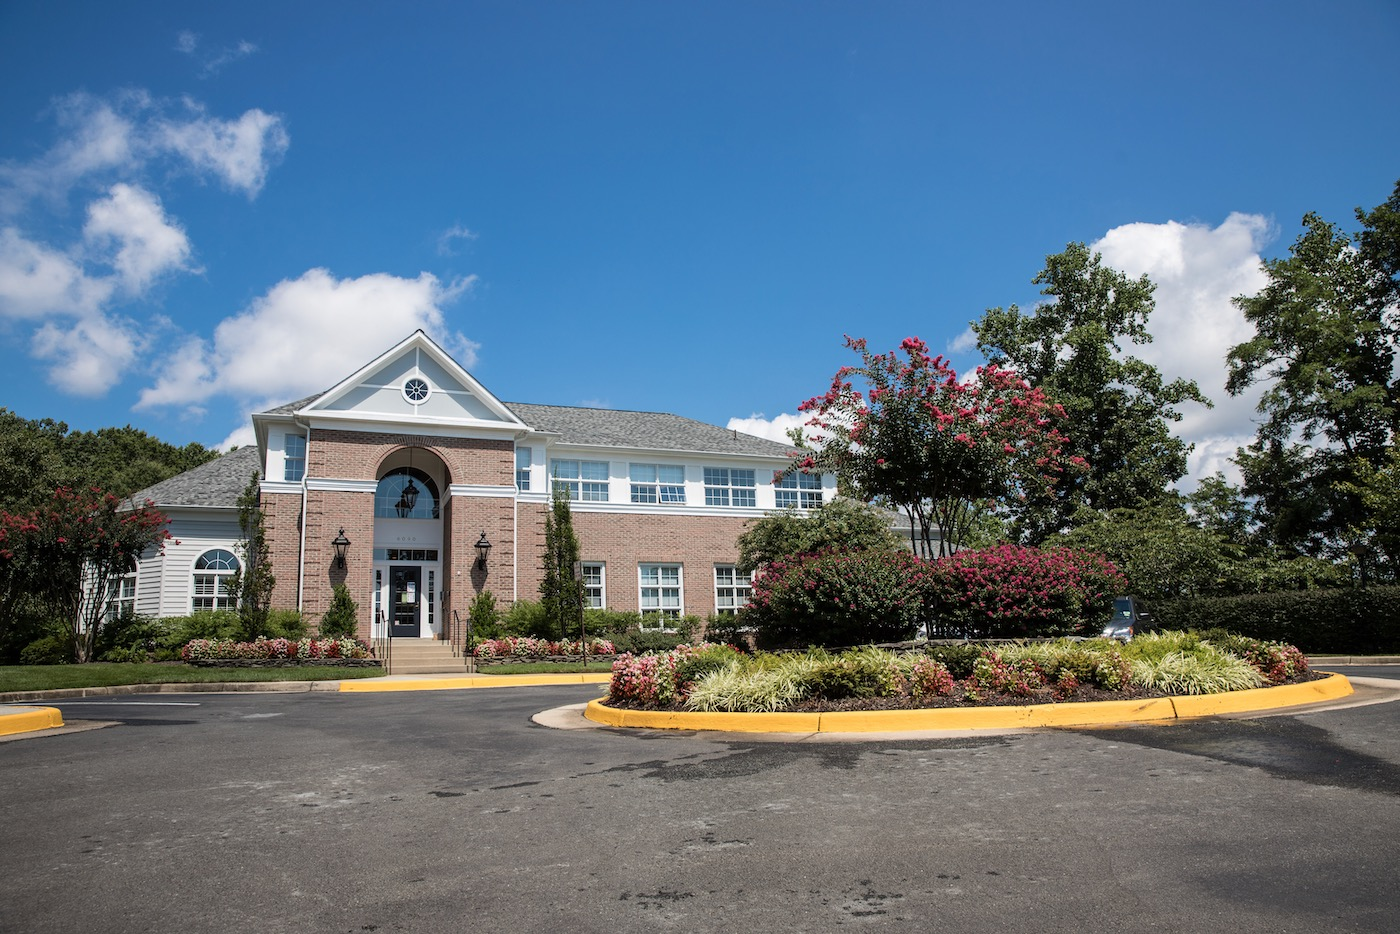 Kingstowne Residential Owners Corporation cover